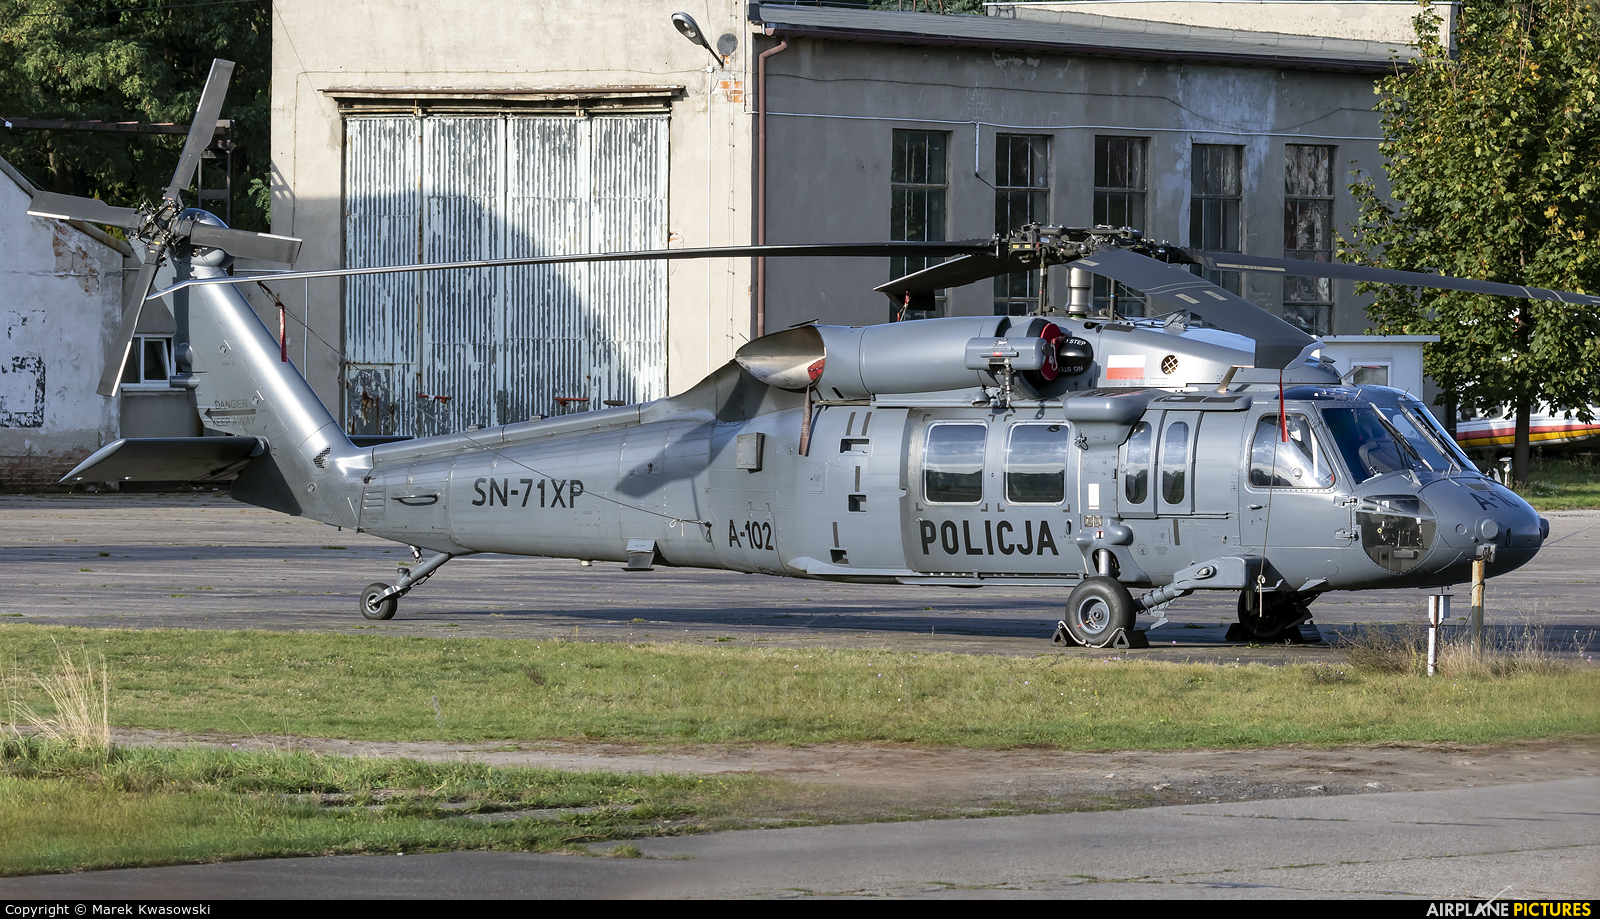 Poland - Police SN-71XP aircraft at Warsaw - Babice